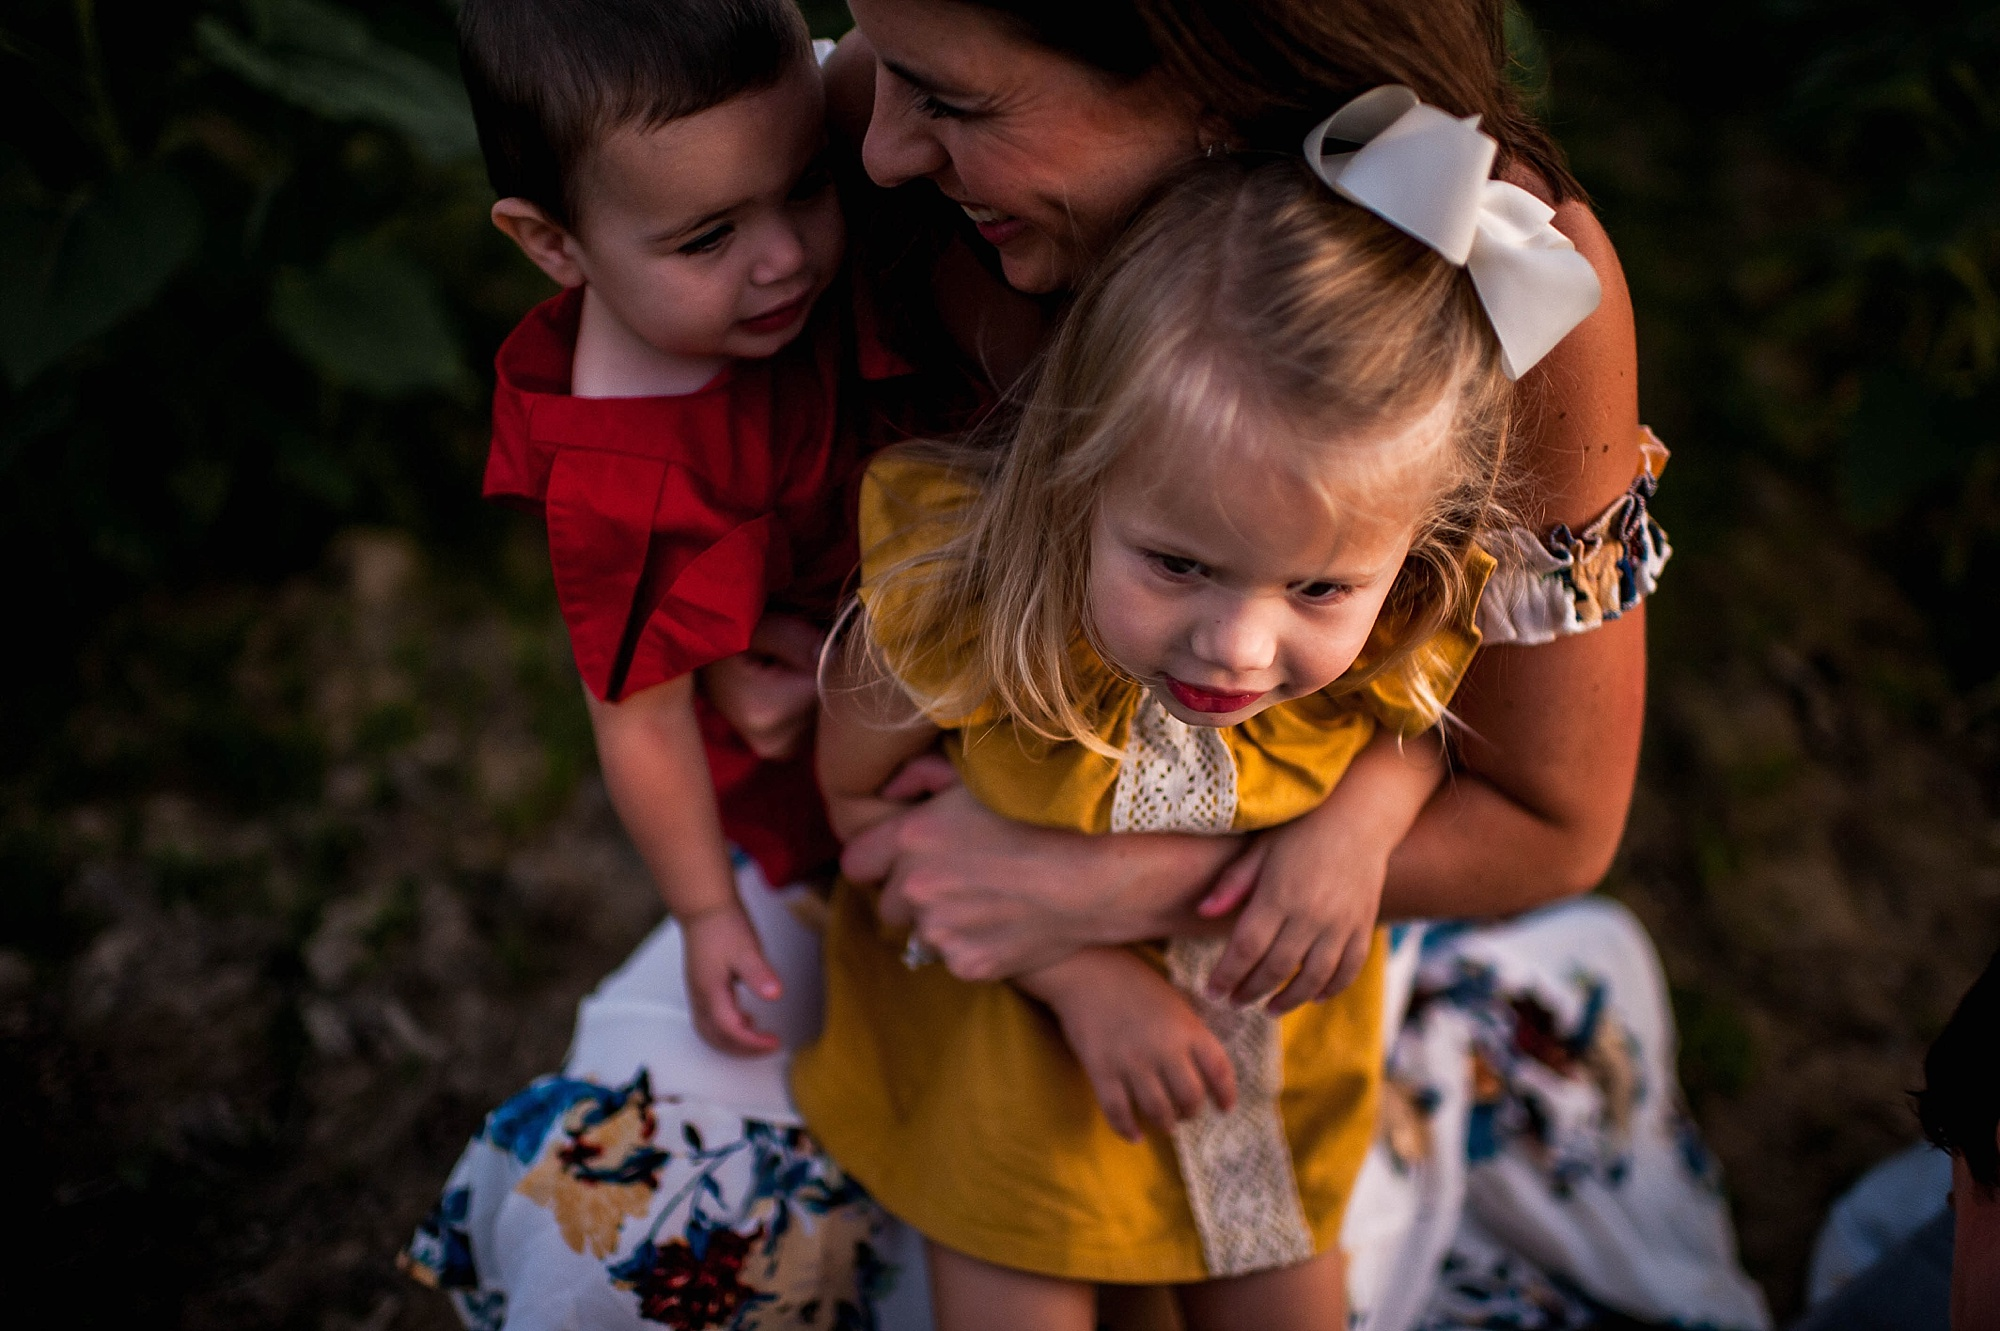 lauren-grayson-photography-cleveland-ohio-photographer-sunflower-fields-sunset-golden-hour-photo-shoot-mommy-and-me-family-child-photographer_0589.jpg